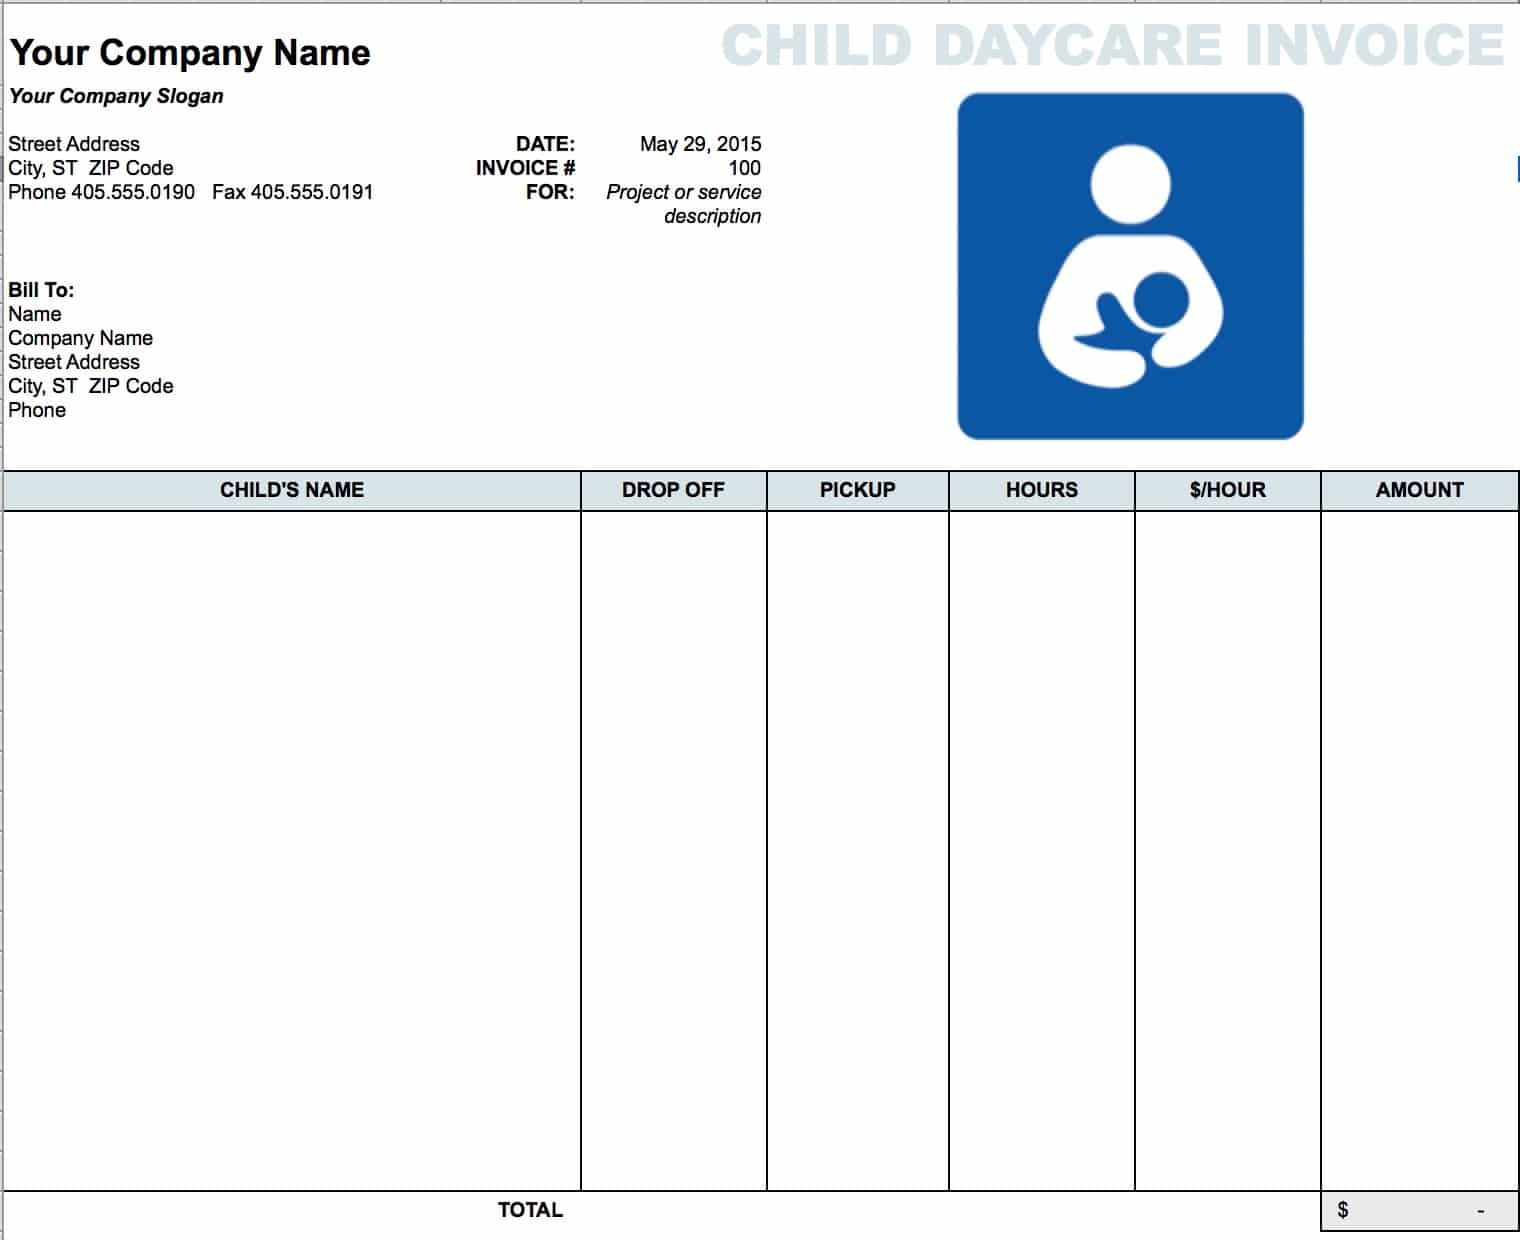 Free Daycare Child Invoice Template Excel PDF Word Doc - Free word document invoice template for service business